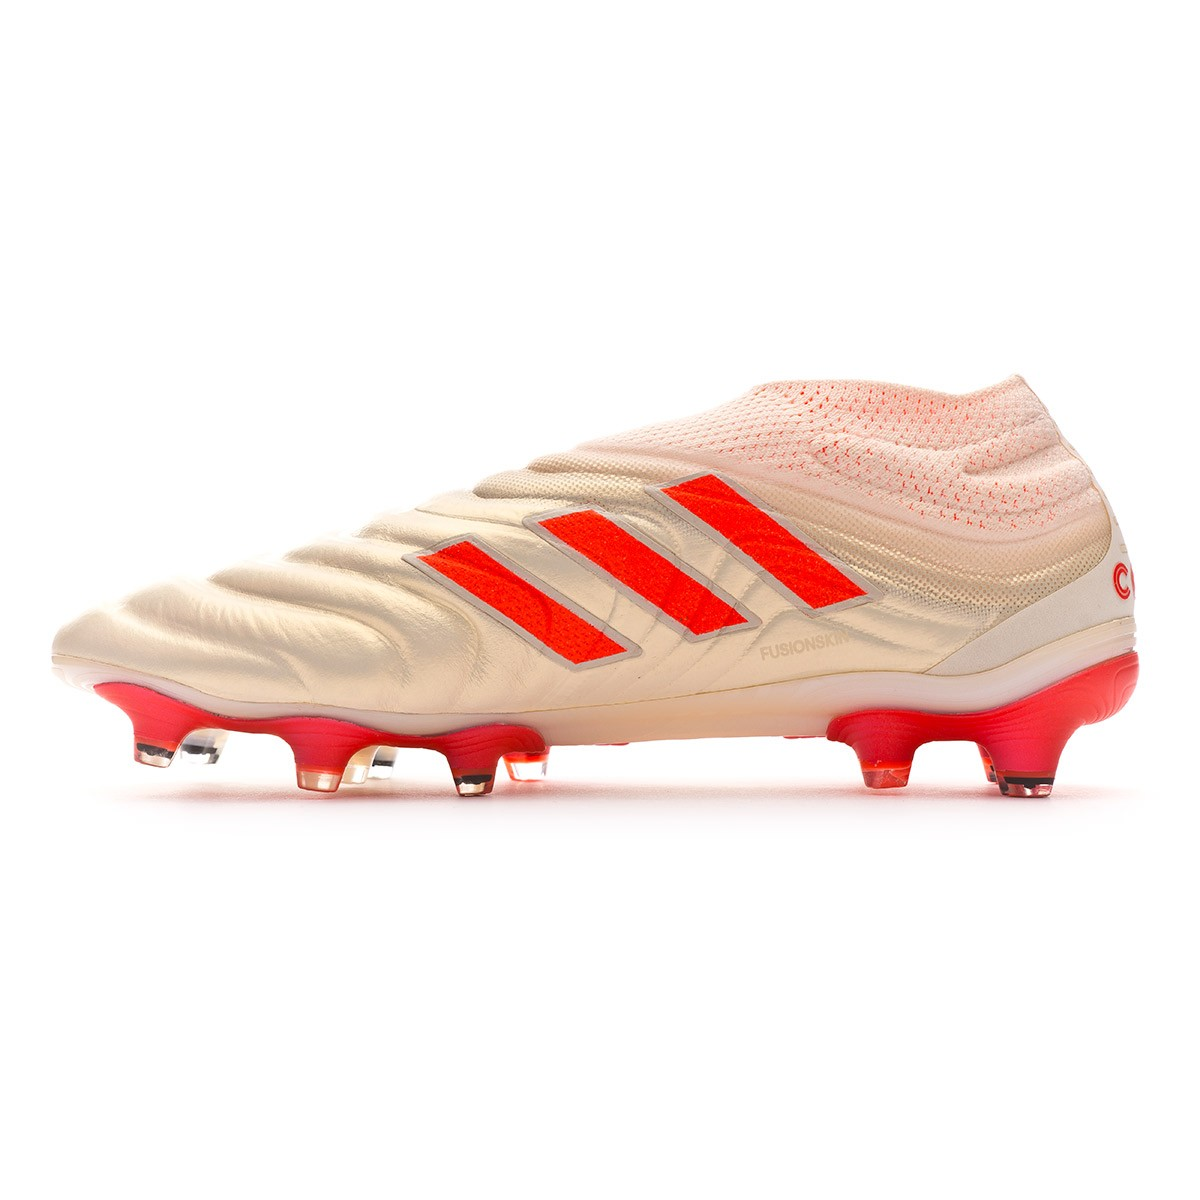 010718c27 Football Boots adidas Copa 19+ FG Off white-Solar red-Off white - Football  store Fútbol Emotion